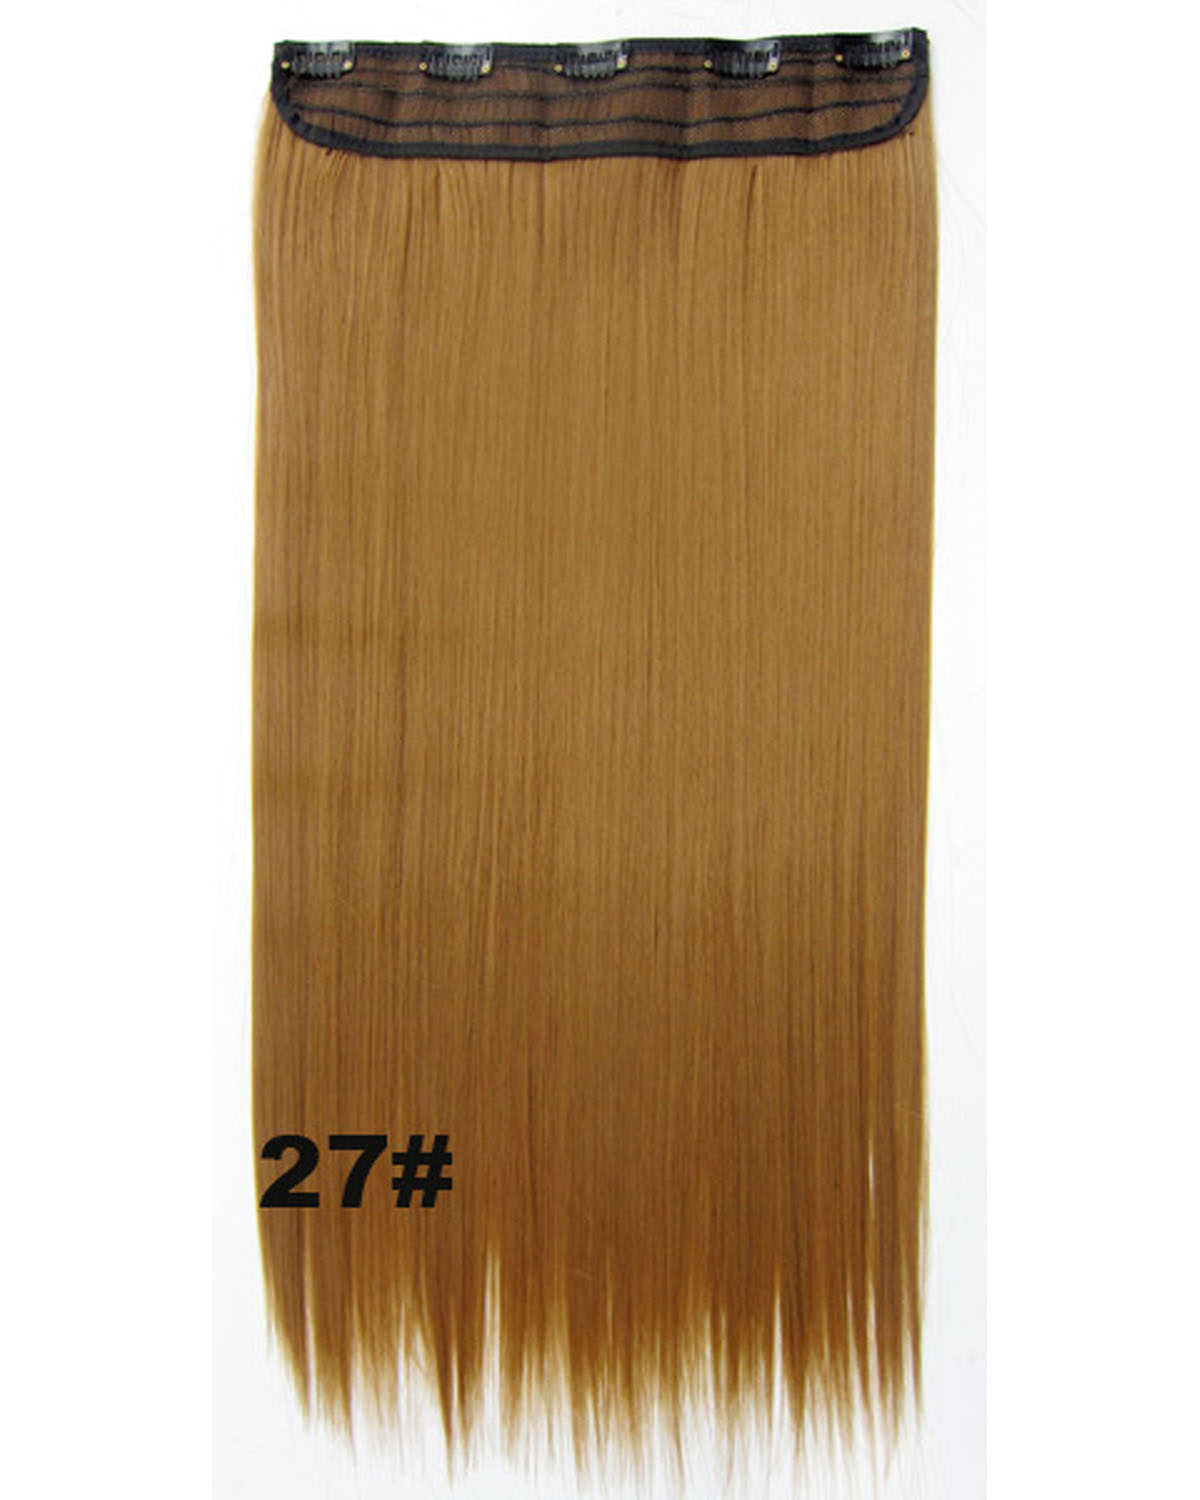 24 inch Gorgeous Straight Long One Piece 5 Clips Clip in Synthetic Hair Extension 27#